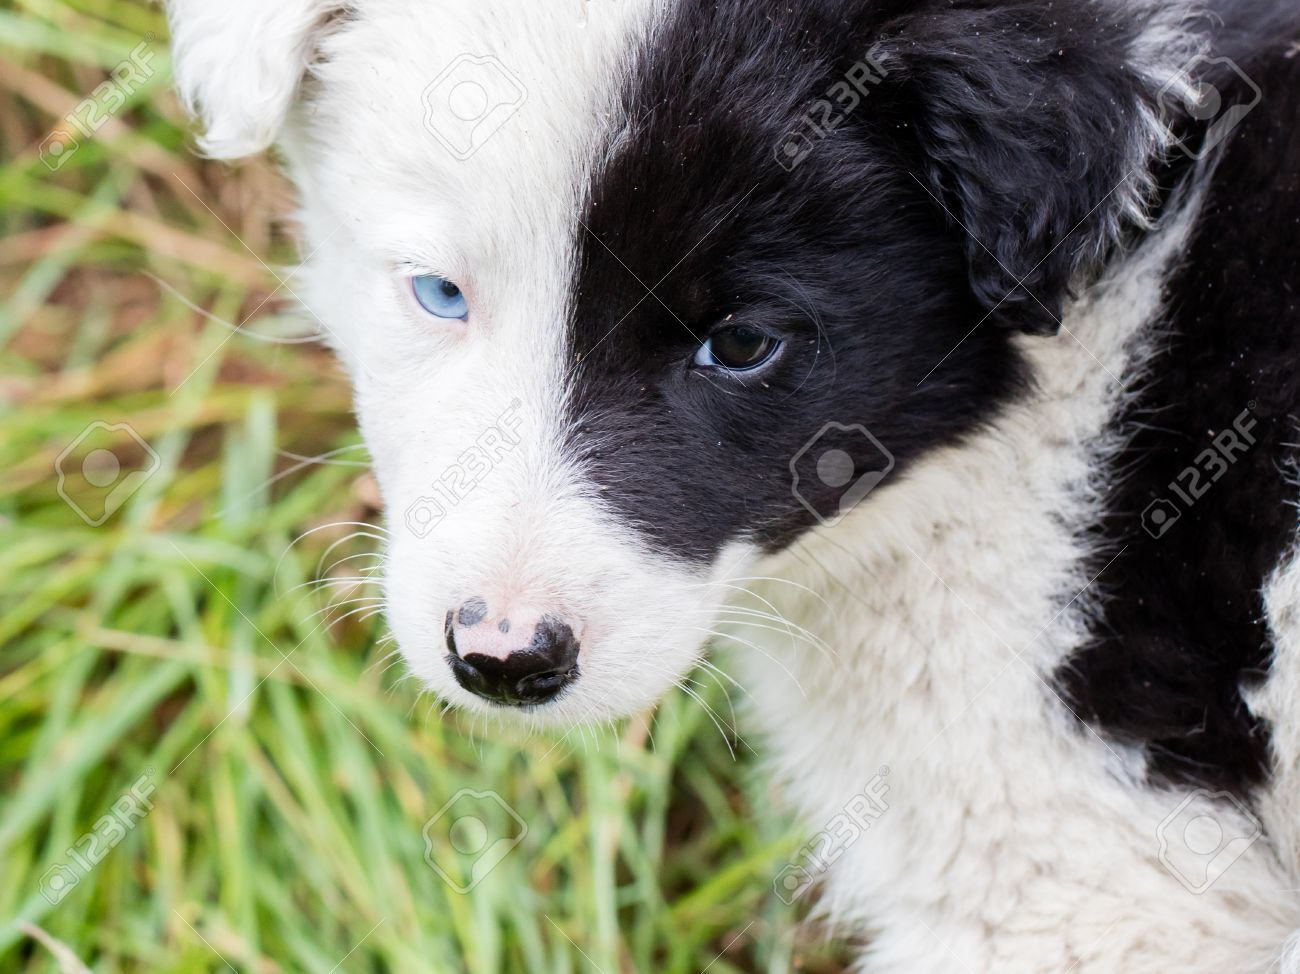 Border Collie Puppy On A Farm One Blue Eye Stock Photo Picture And Royalty Free Image Image 61347781